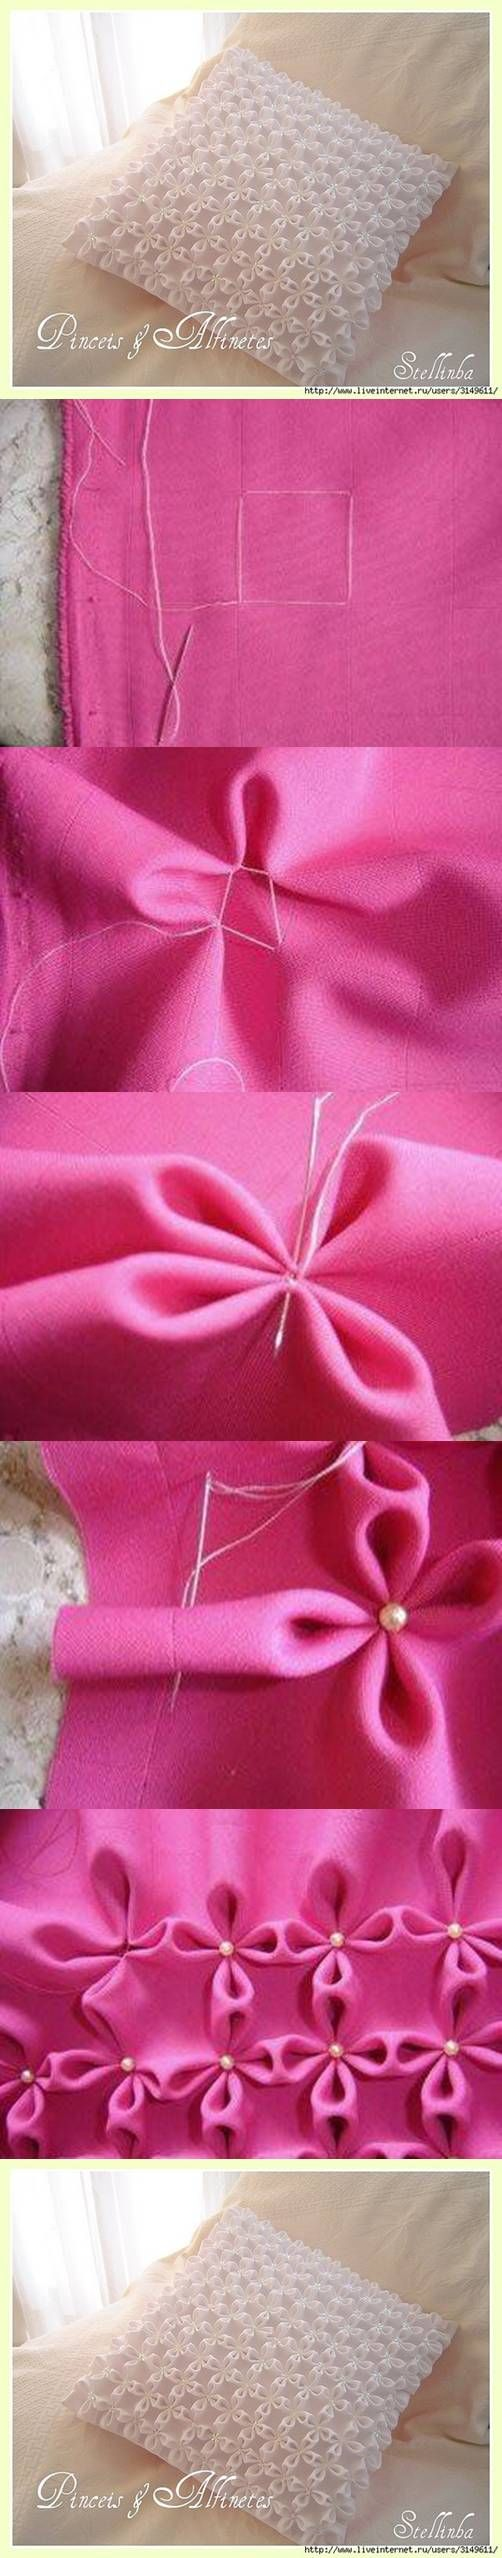 Flower fabric technique